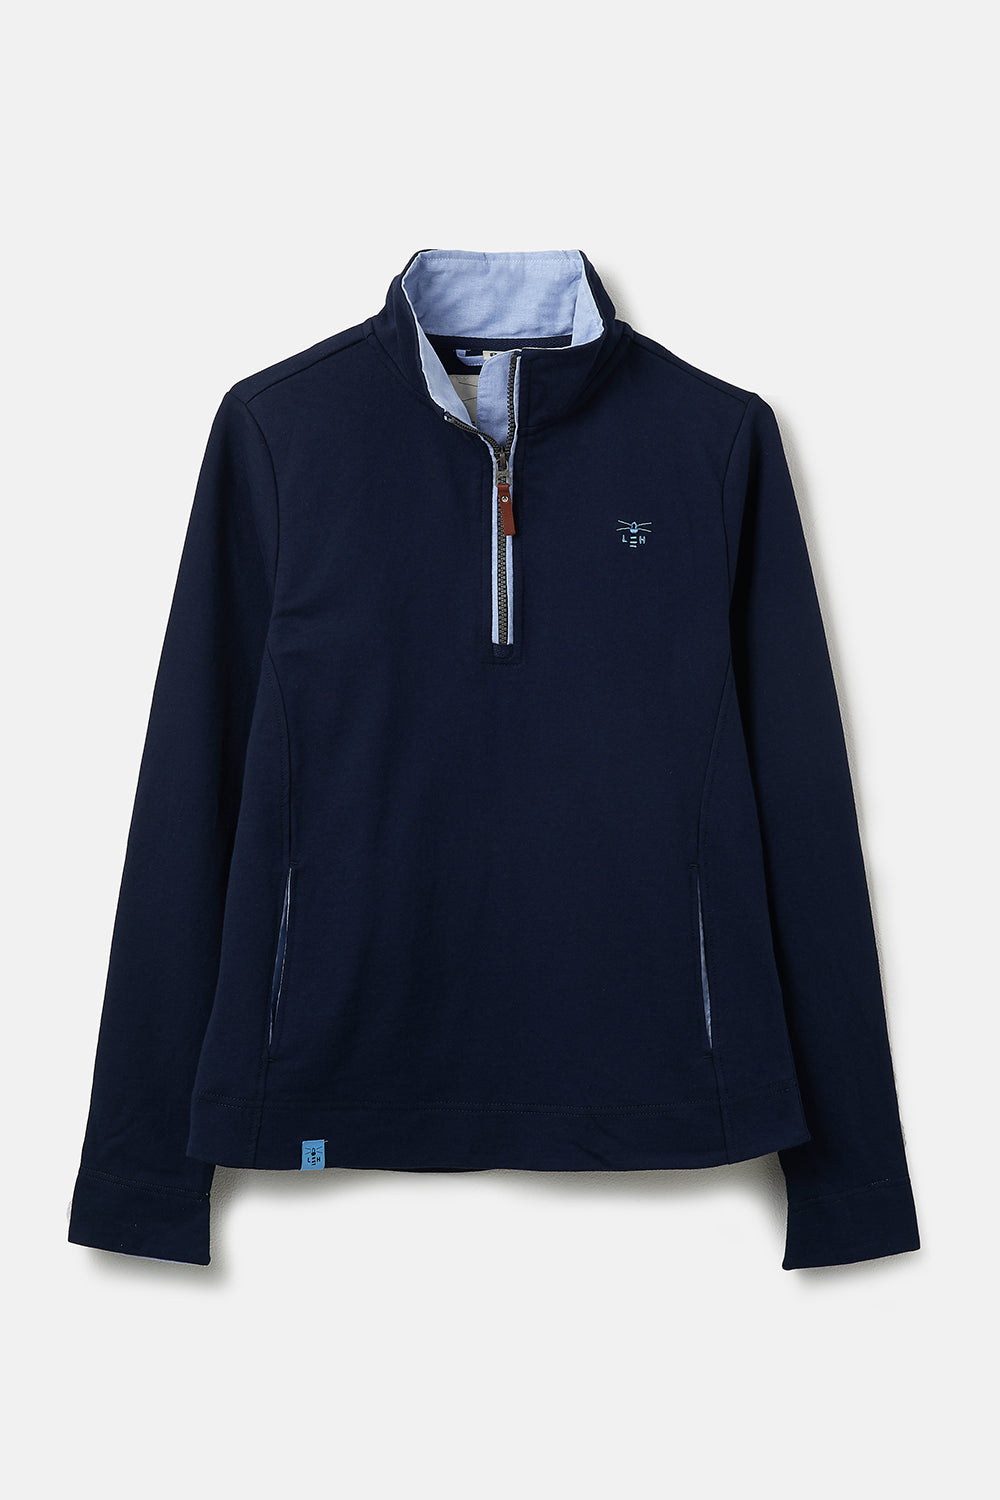 Women's Tops - Shore Sweatshirt - Navy Half Zip Sweatshirt